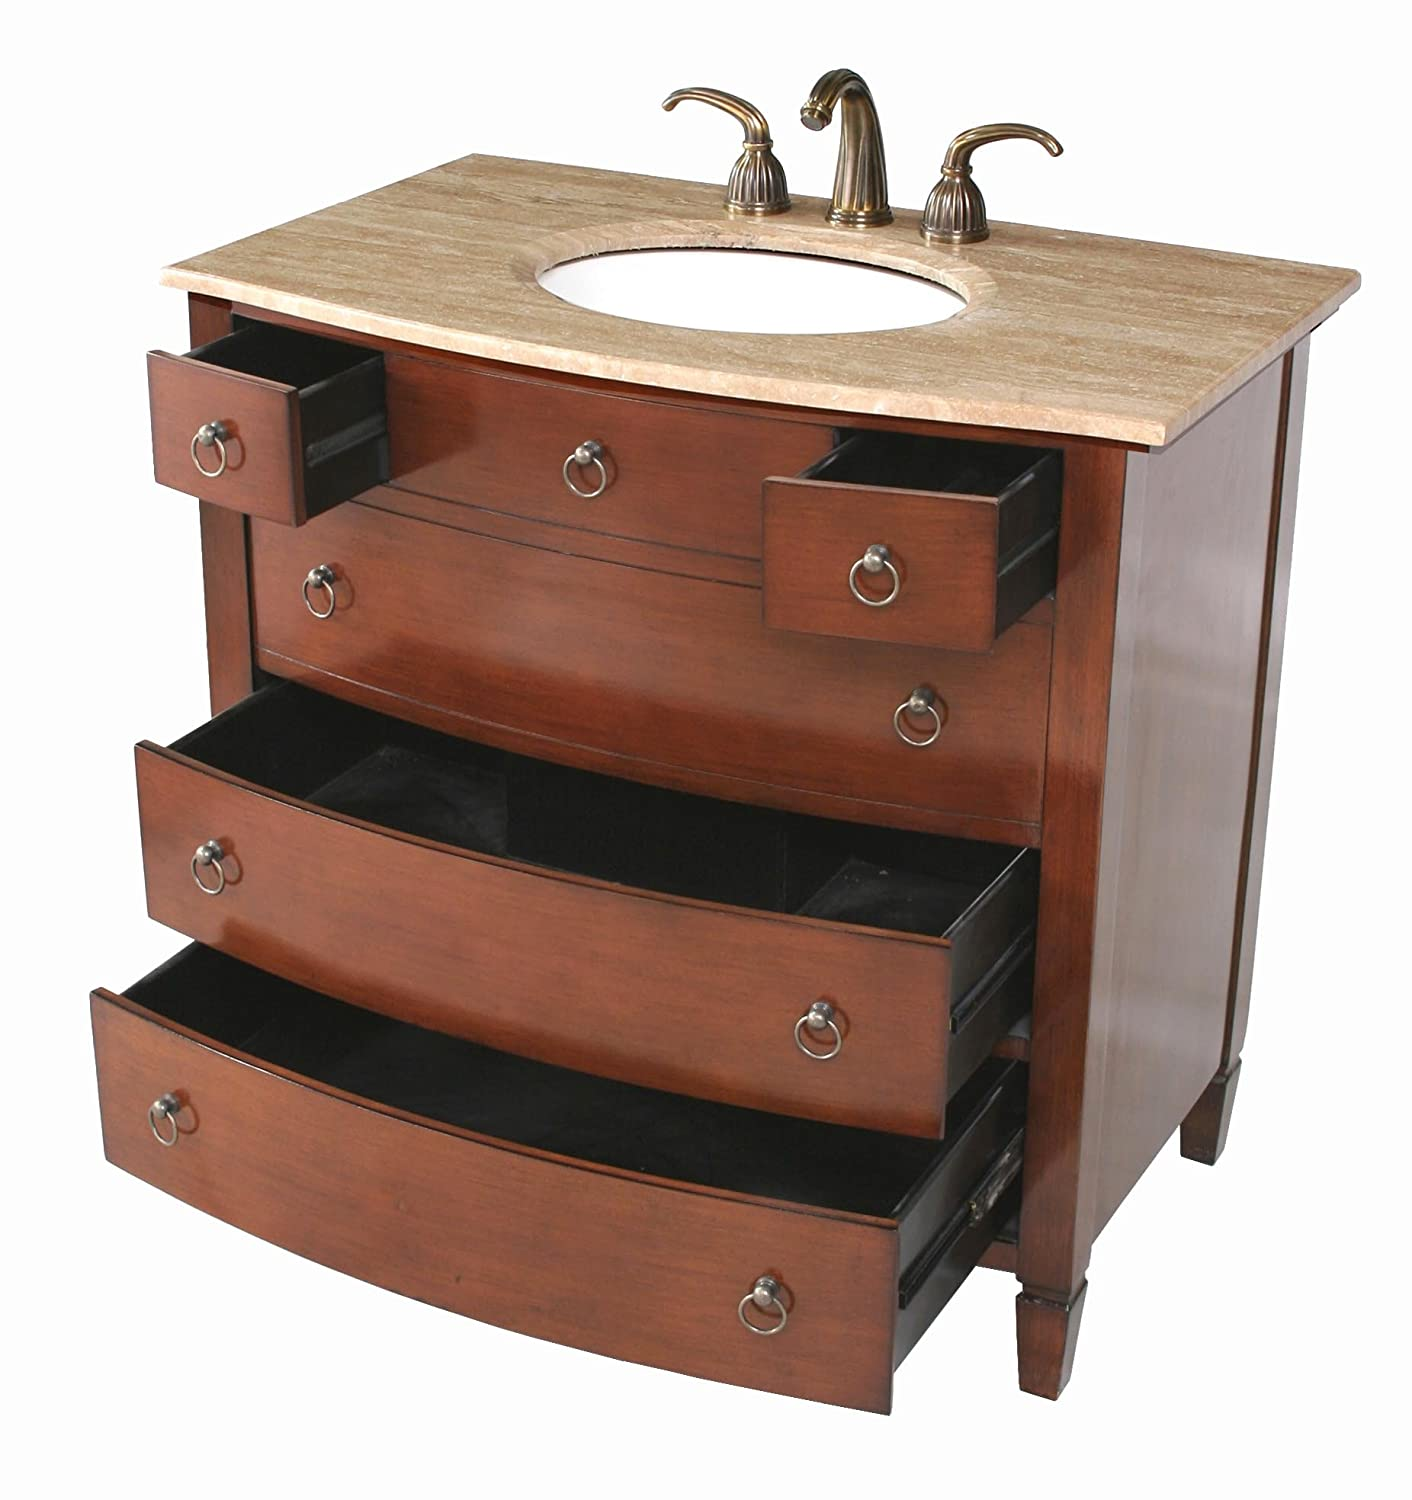 Stufurhome GM 2201 36 TR 36 Inch Augustine Single Vanity In Dark Cherry  Finish With Marble Top In Travertine With White Undermount Sink   Bathroom  Vanities ...